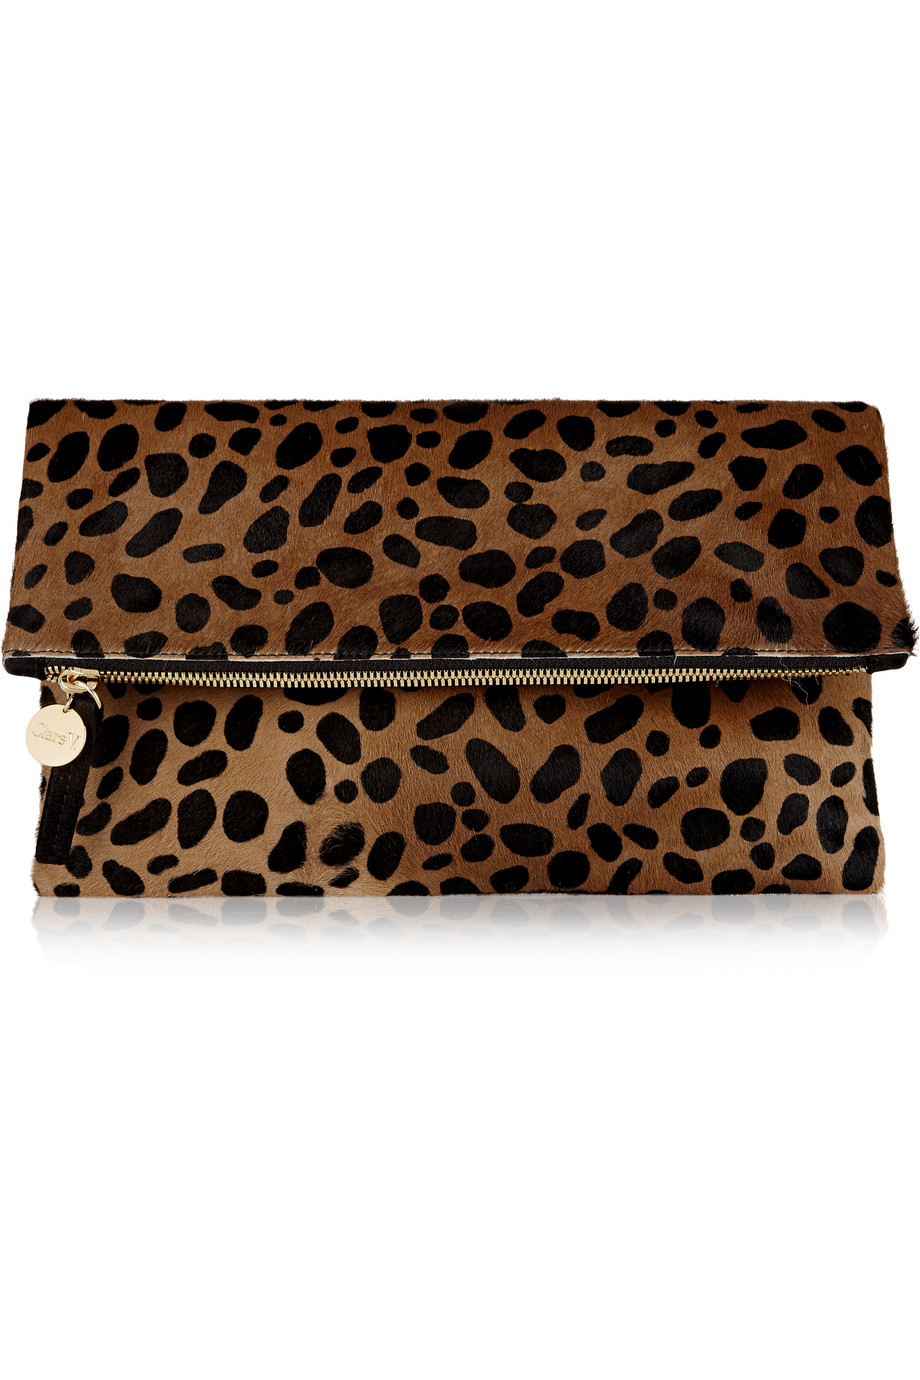 Clare V Fold-Over Leopard-Print Calf Hair Clutch, Leopard Print, Women's, Size: One Size